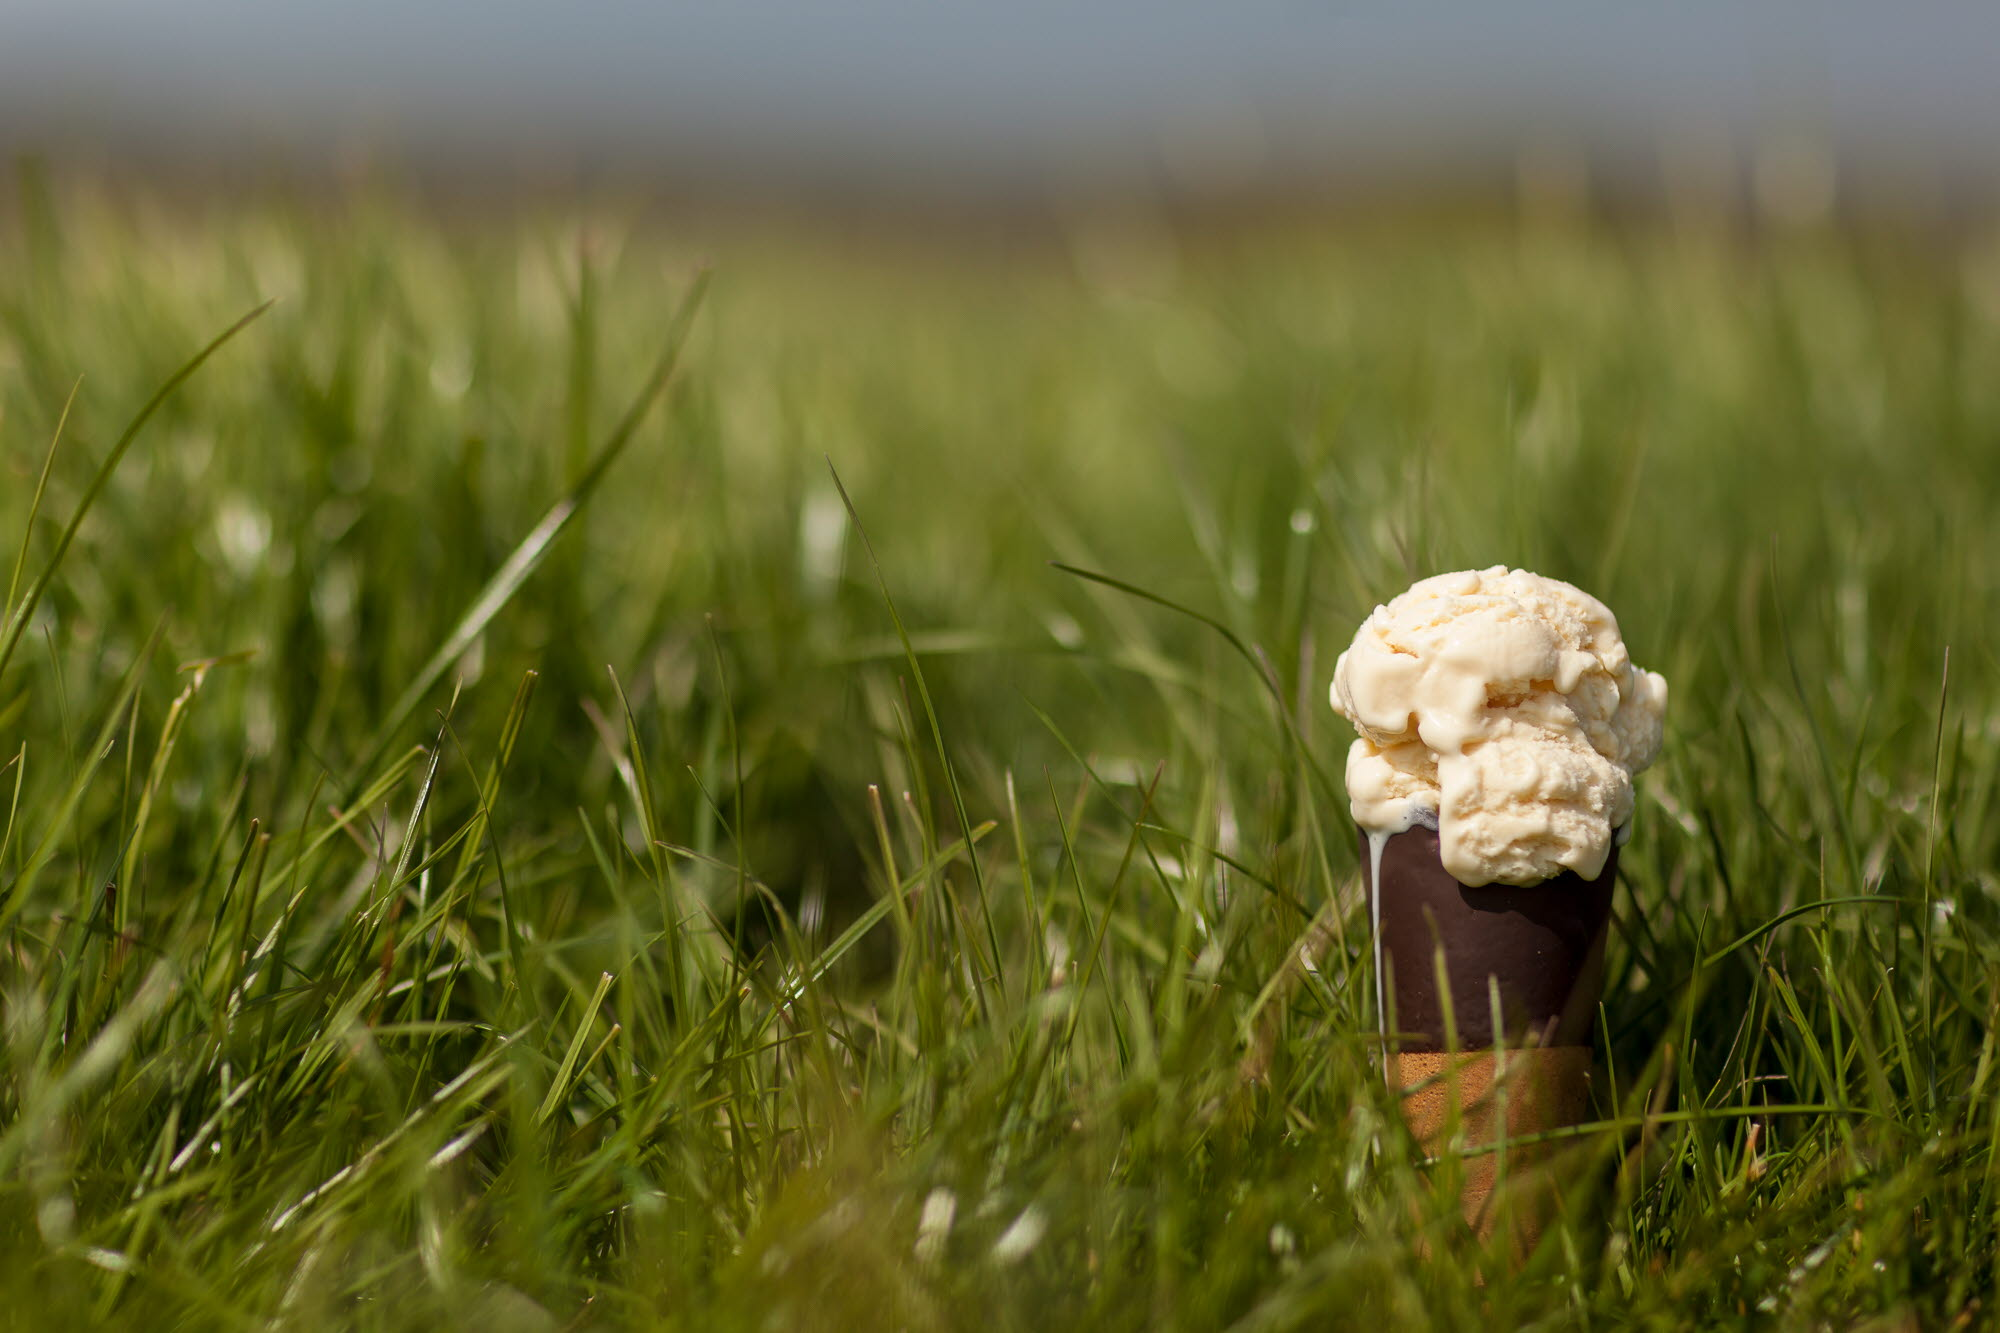 Minghella Ice Cream Cone in Grass